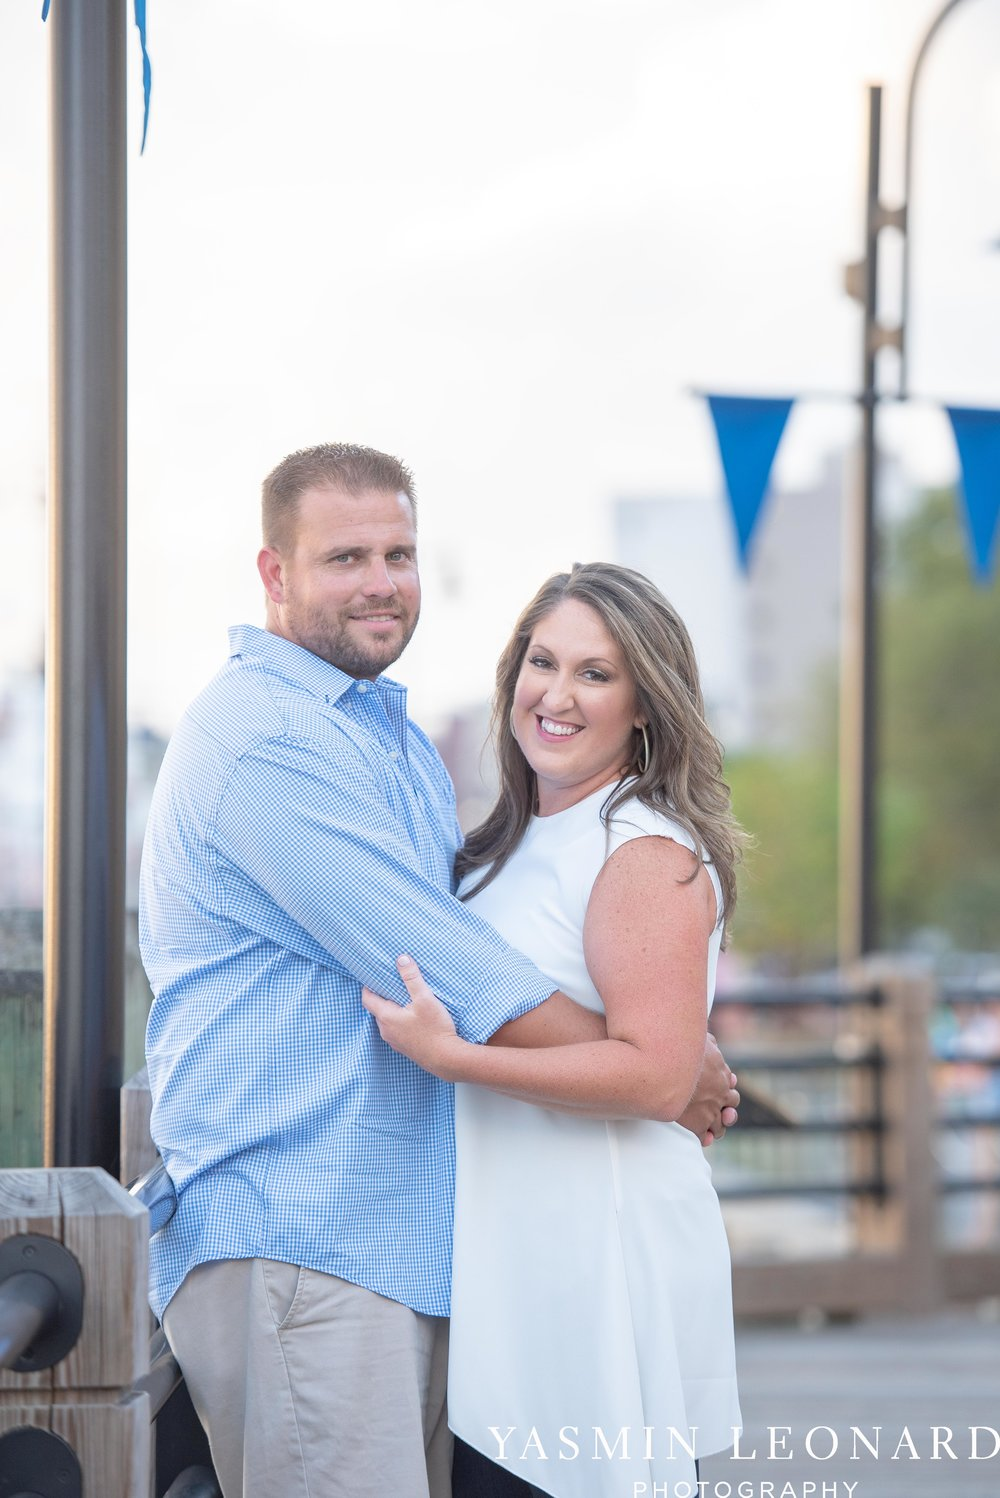 Wrightsville Beach Engagement Session - Wilmington Engagement Session - Downtown Wilmington Engagement Session - NC Weddings - Wilmington NC - Yasmin Leonard Photography-1.jpg